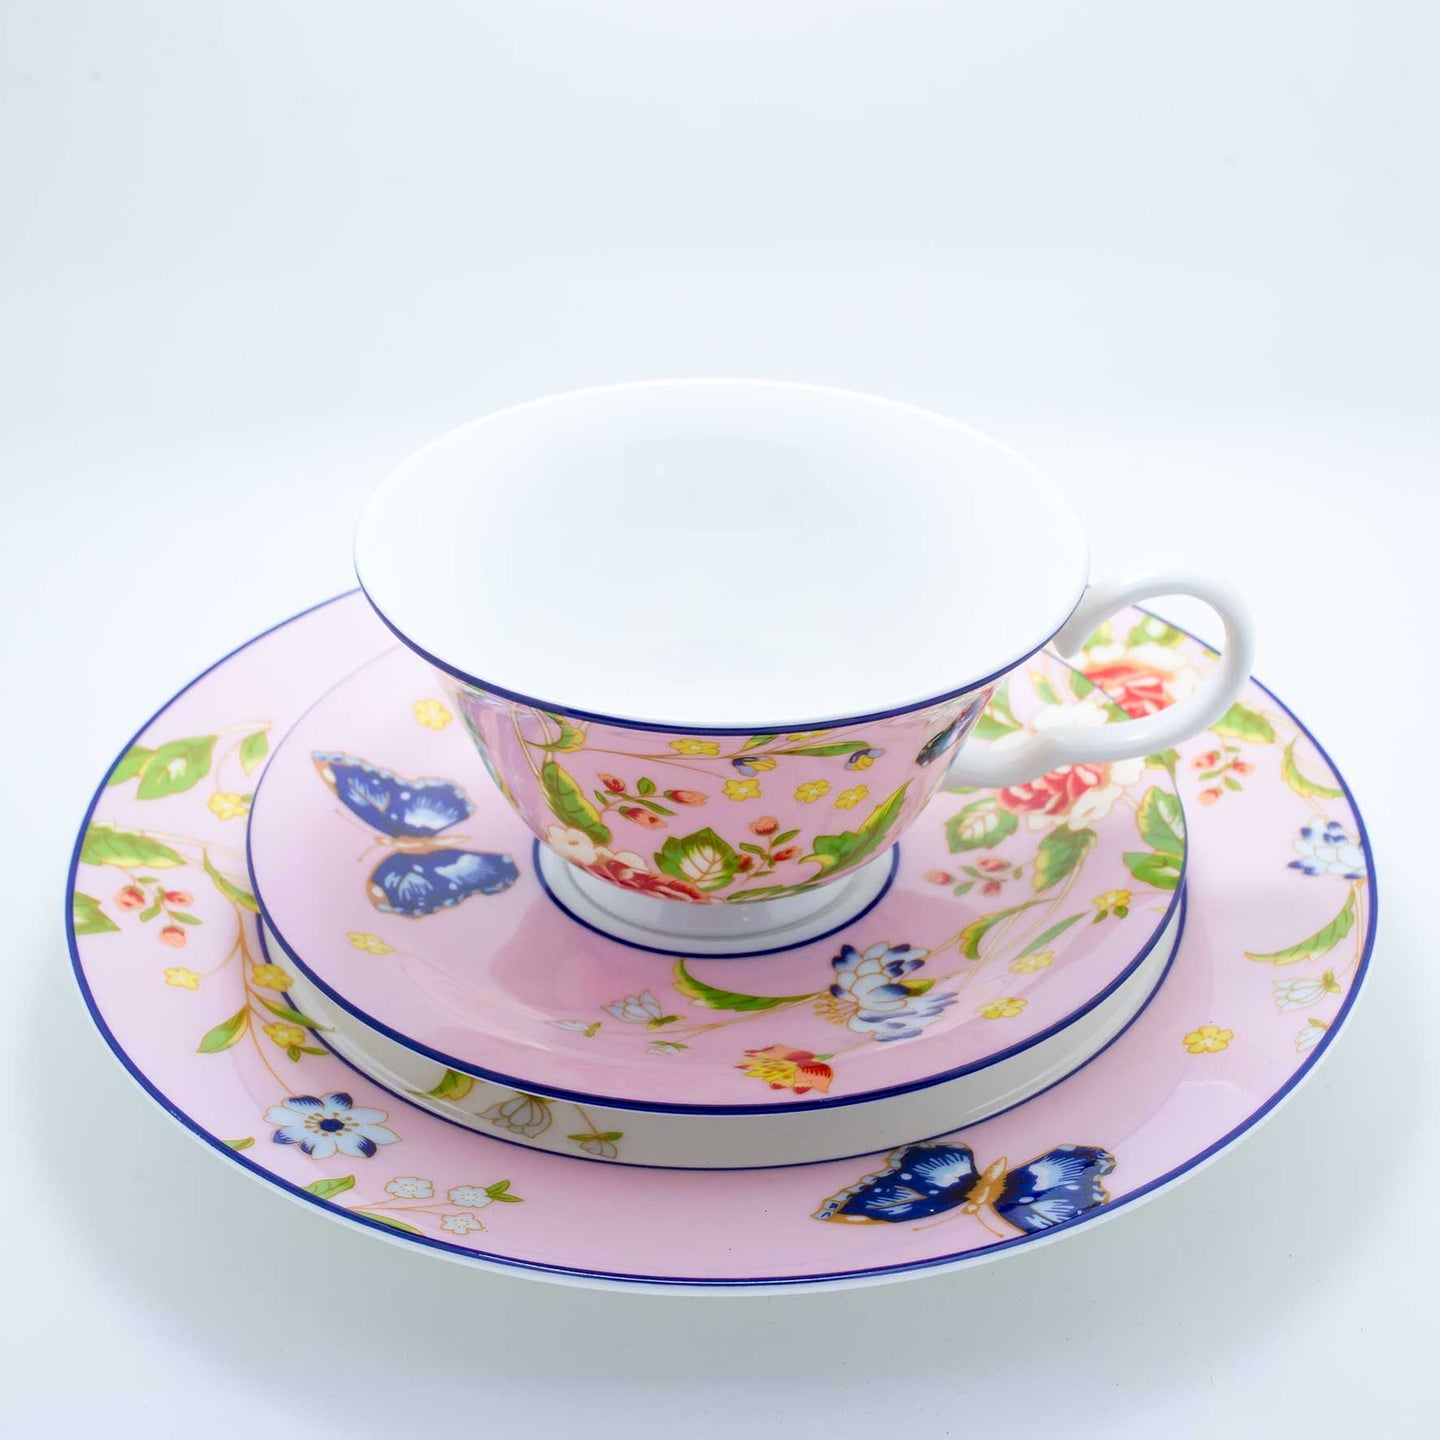 Refresh Moment Aynsley Lovely Garden Teacup and Saucer